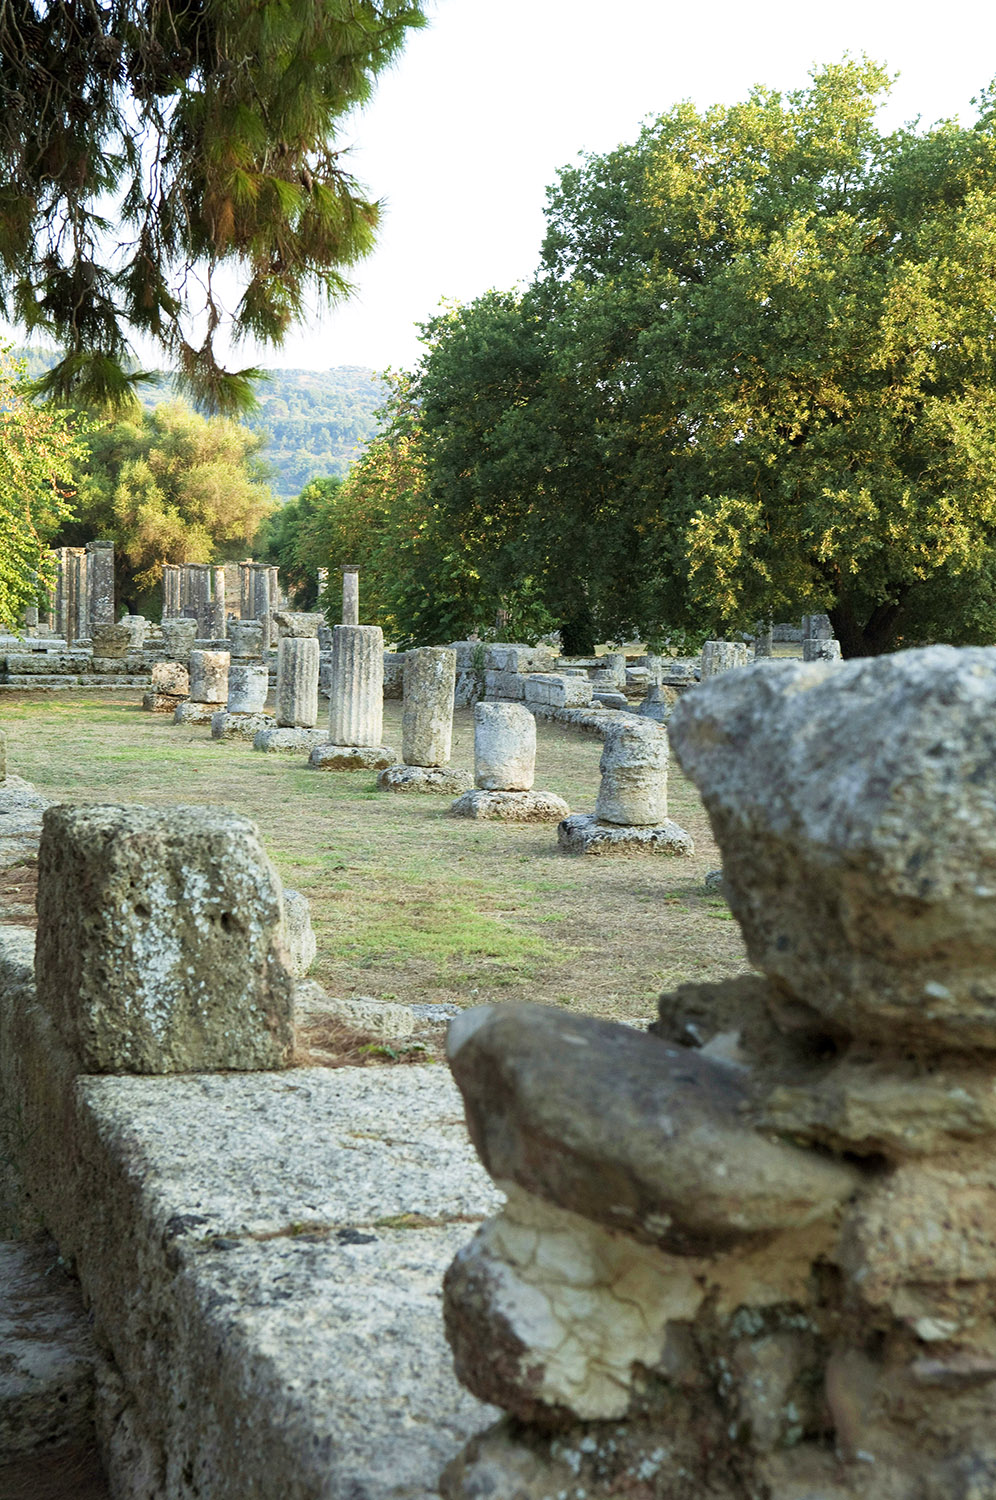 Greece / Ancient Olympia / Palestra of Olympia